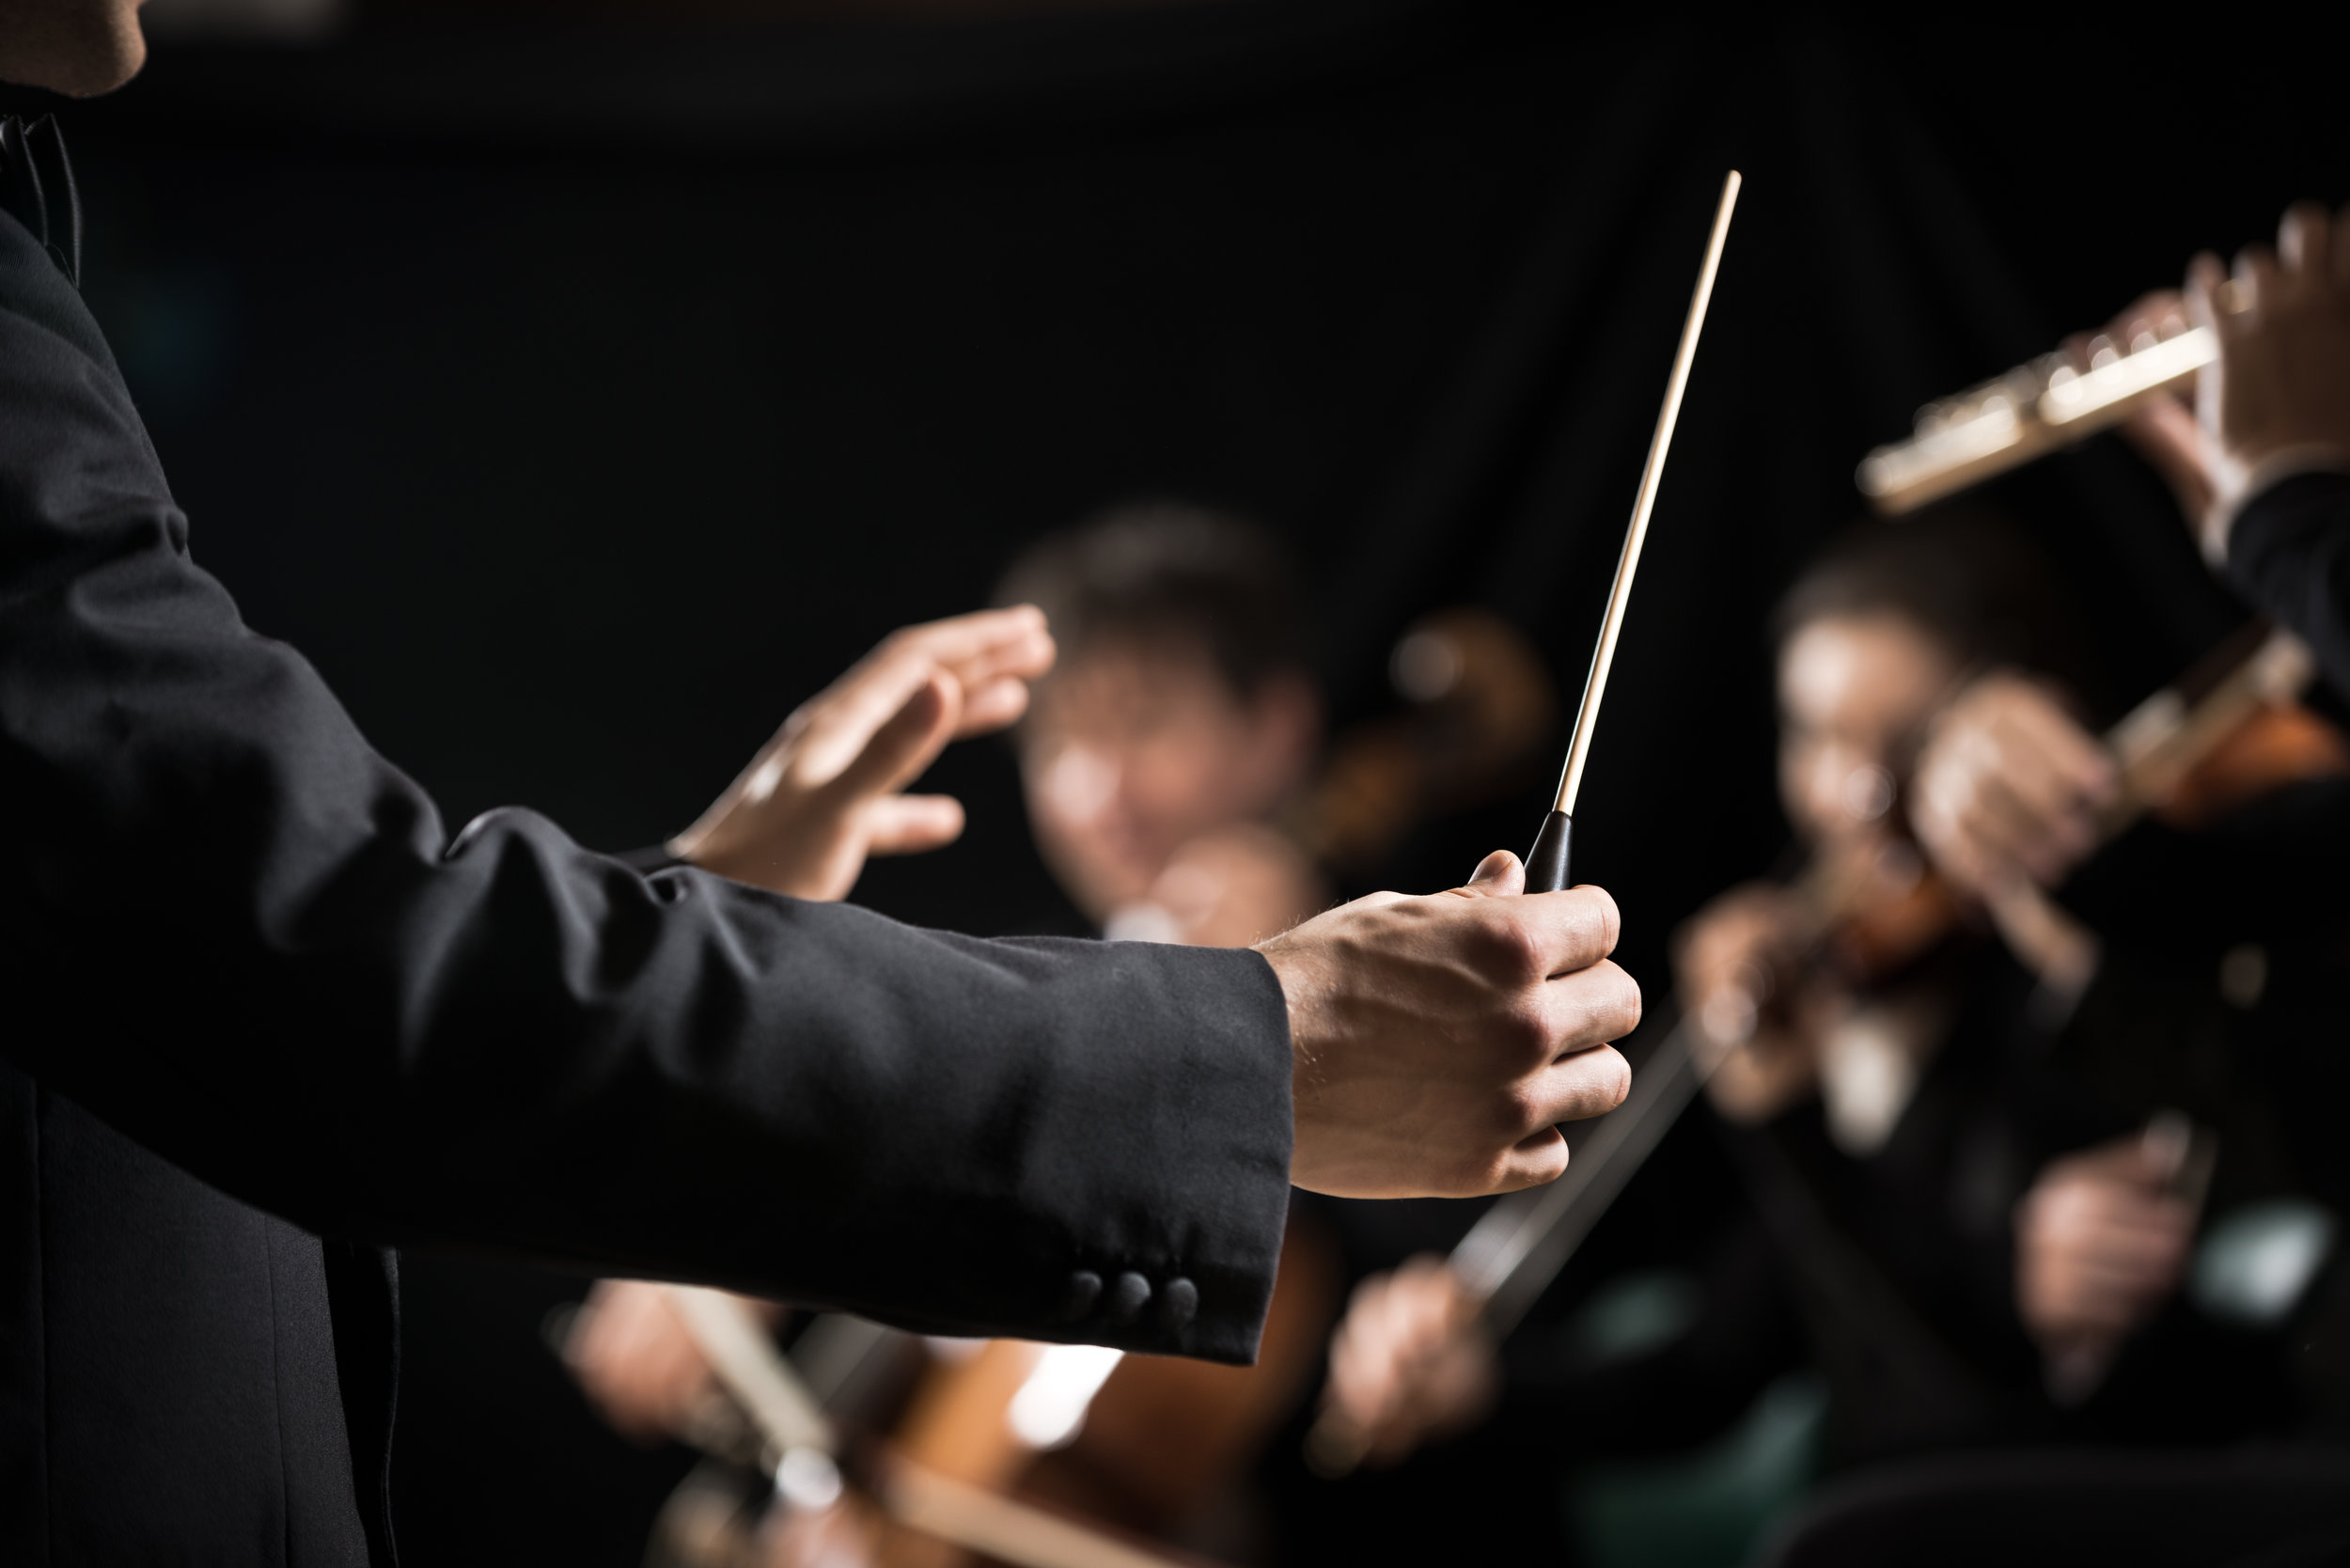 Conductor standing in front of an orchestra with baton in hand